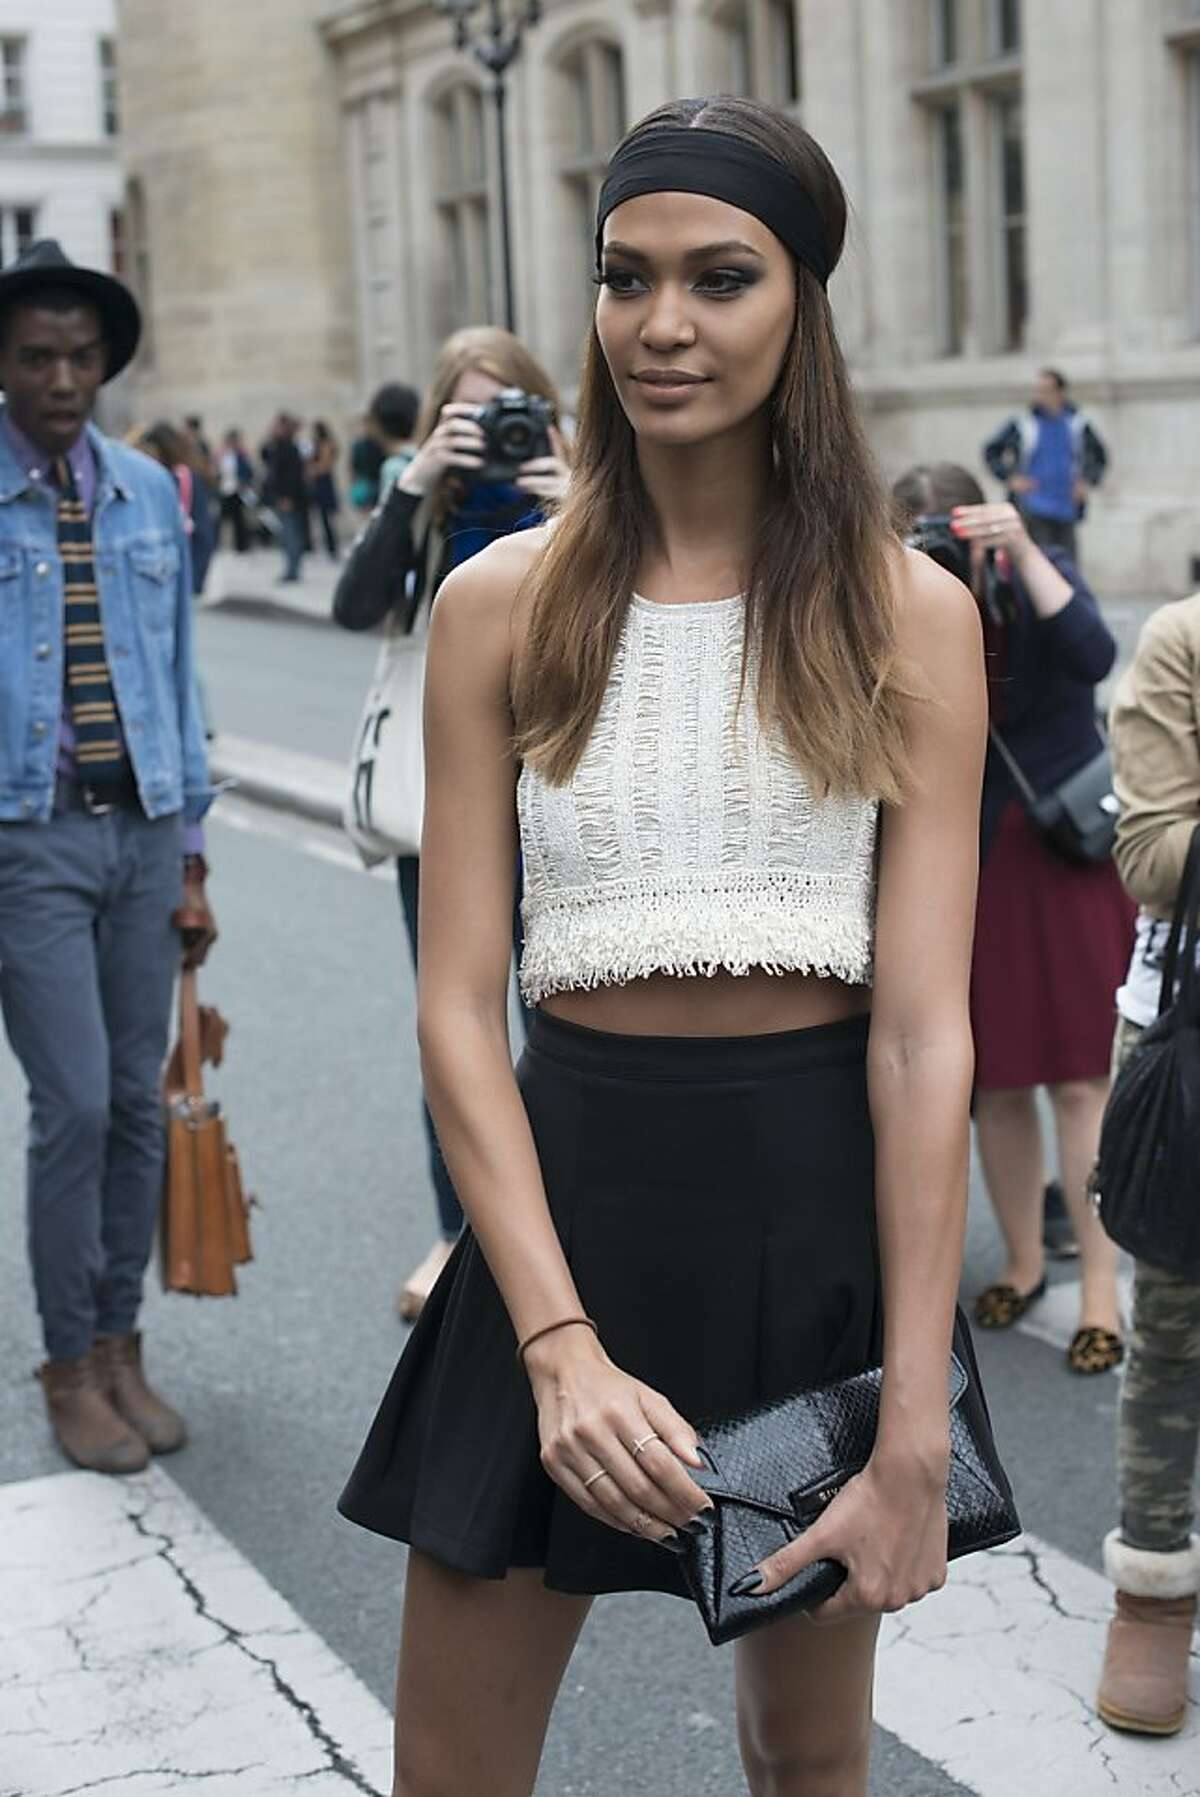 Model Joan Smalls on day 3 of Paris Collections: Women's Haute Couture on July 03, 2013 in Paris, France. (Photo by Kirstin Sinclair/FilmMagic)